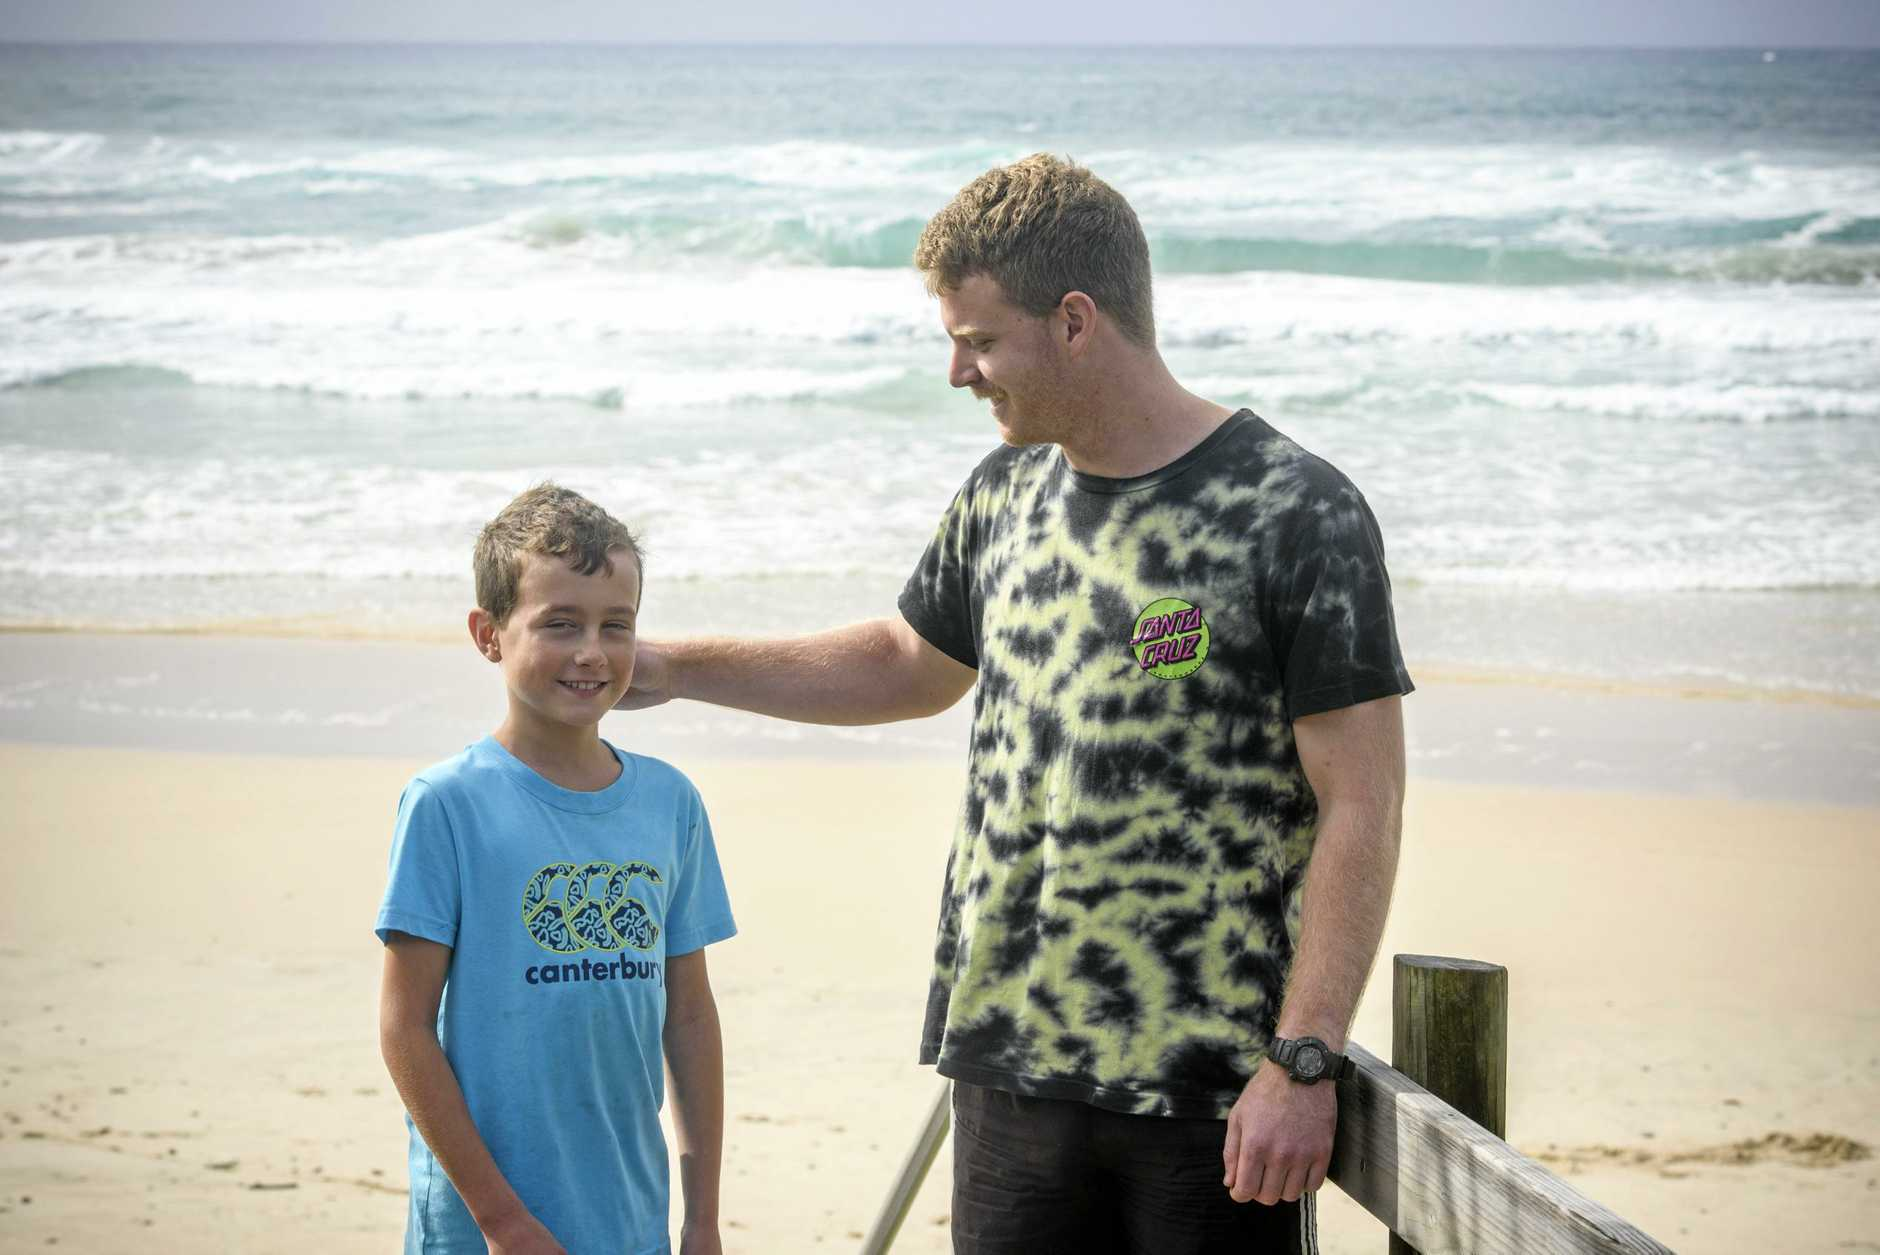 Robert Miller, 9, is reunited with one of his rescuers Jake Scobie, after he was caught in a rip on Pippi Beach this week